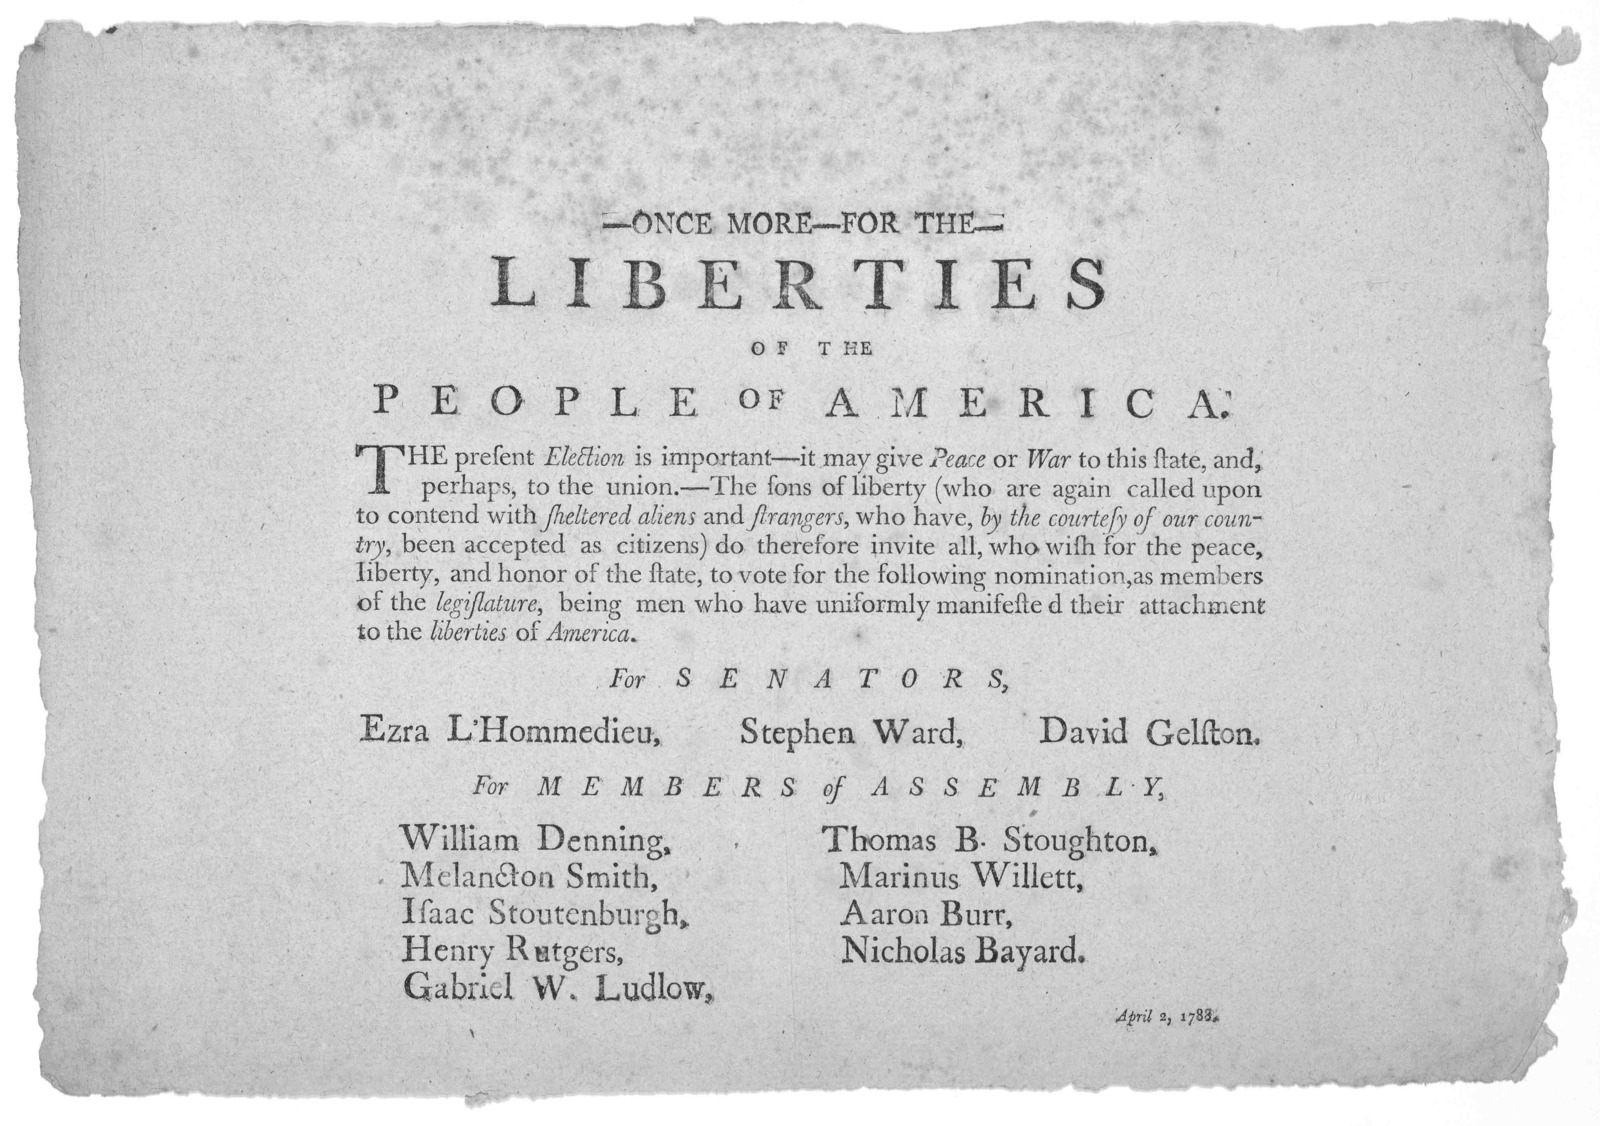 - Once more- for the- liberties of the people of America. The present election is important- it may give peace or war to this State, and perhaps, to the union.- The sons of liberty (who are again called upon to contend with sheltered aliens and